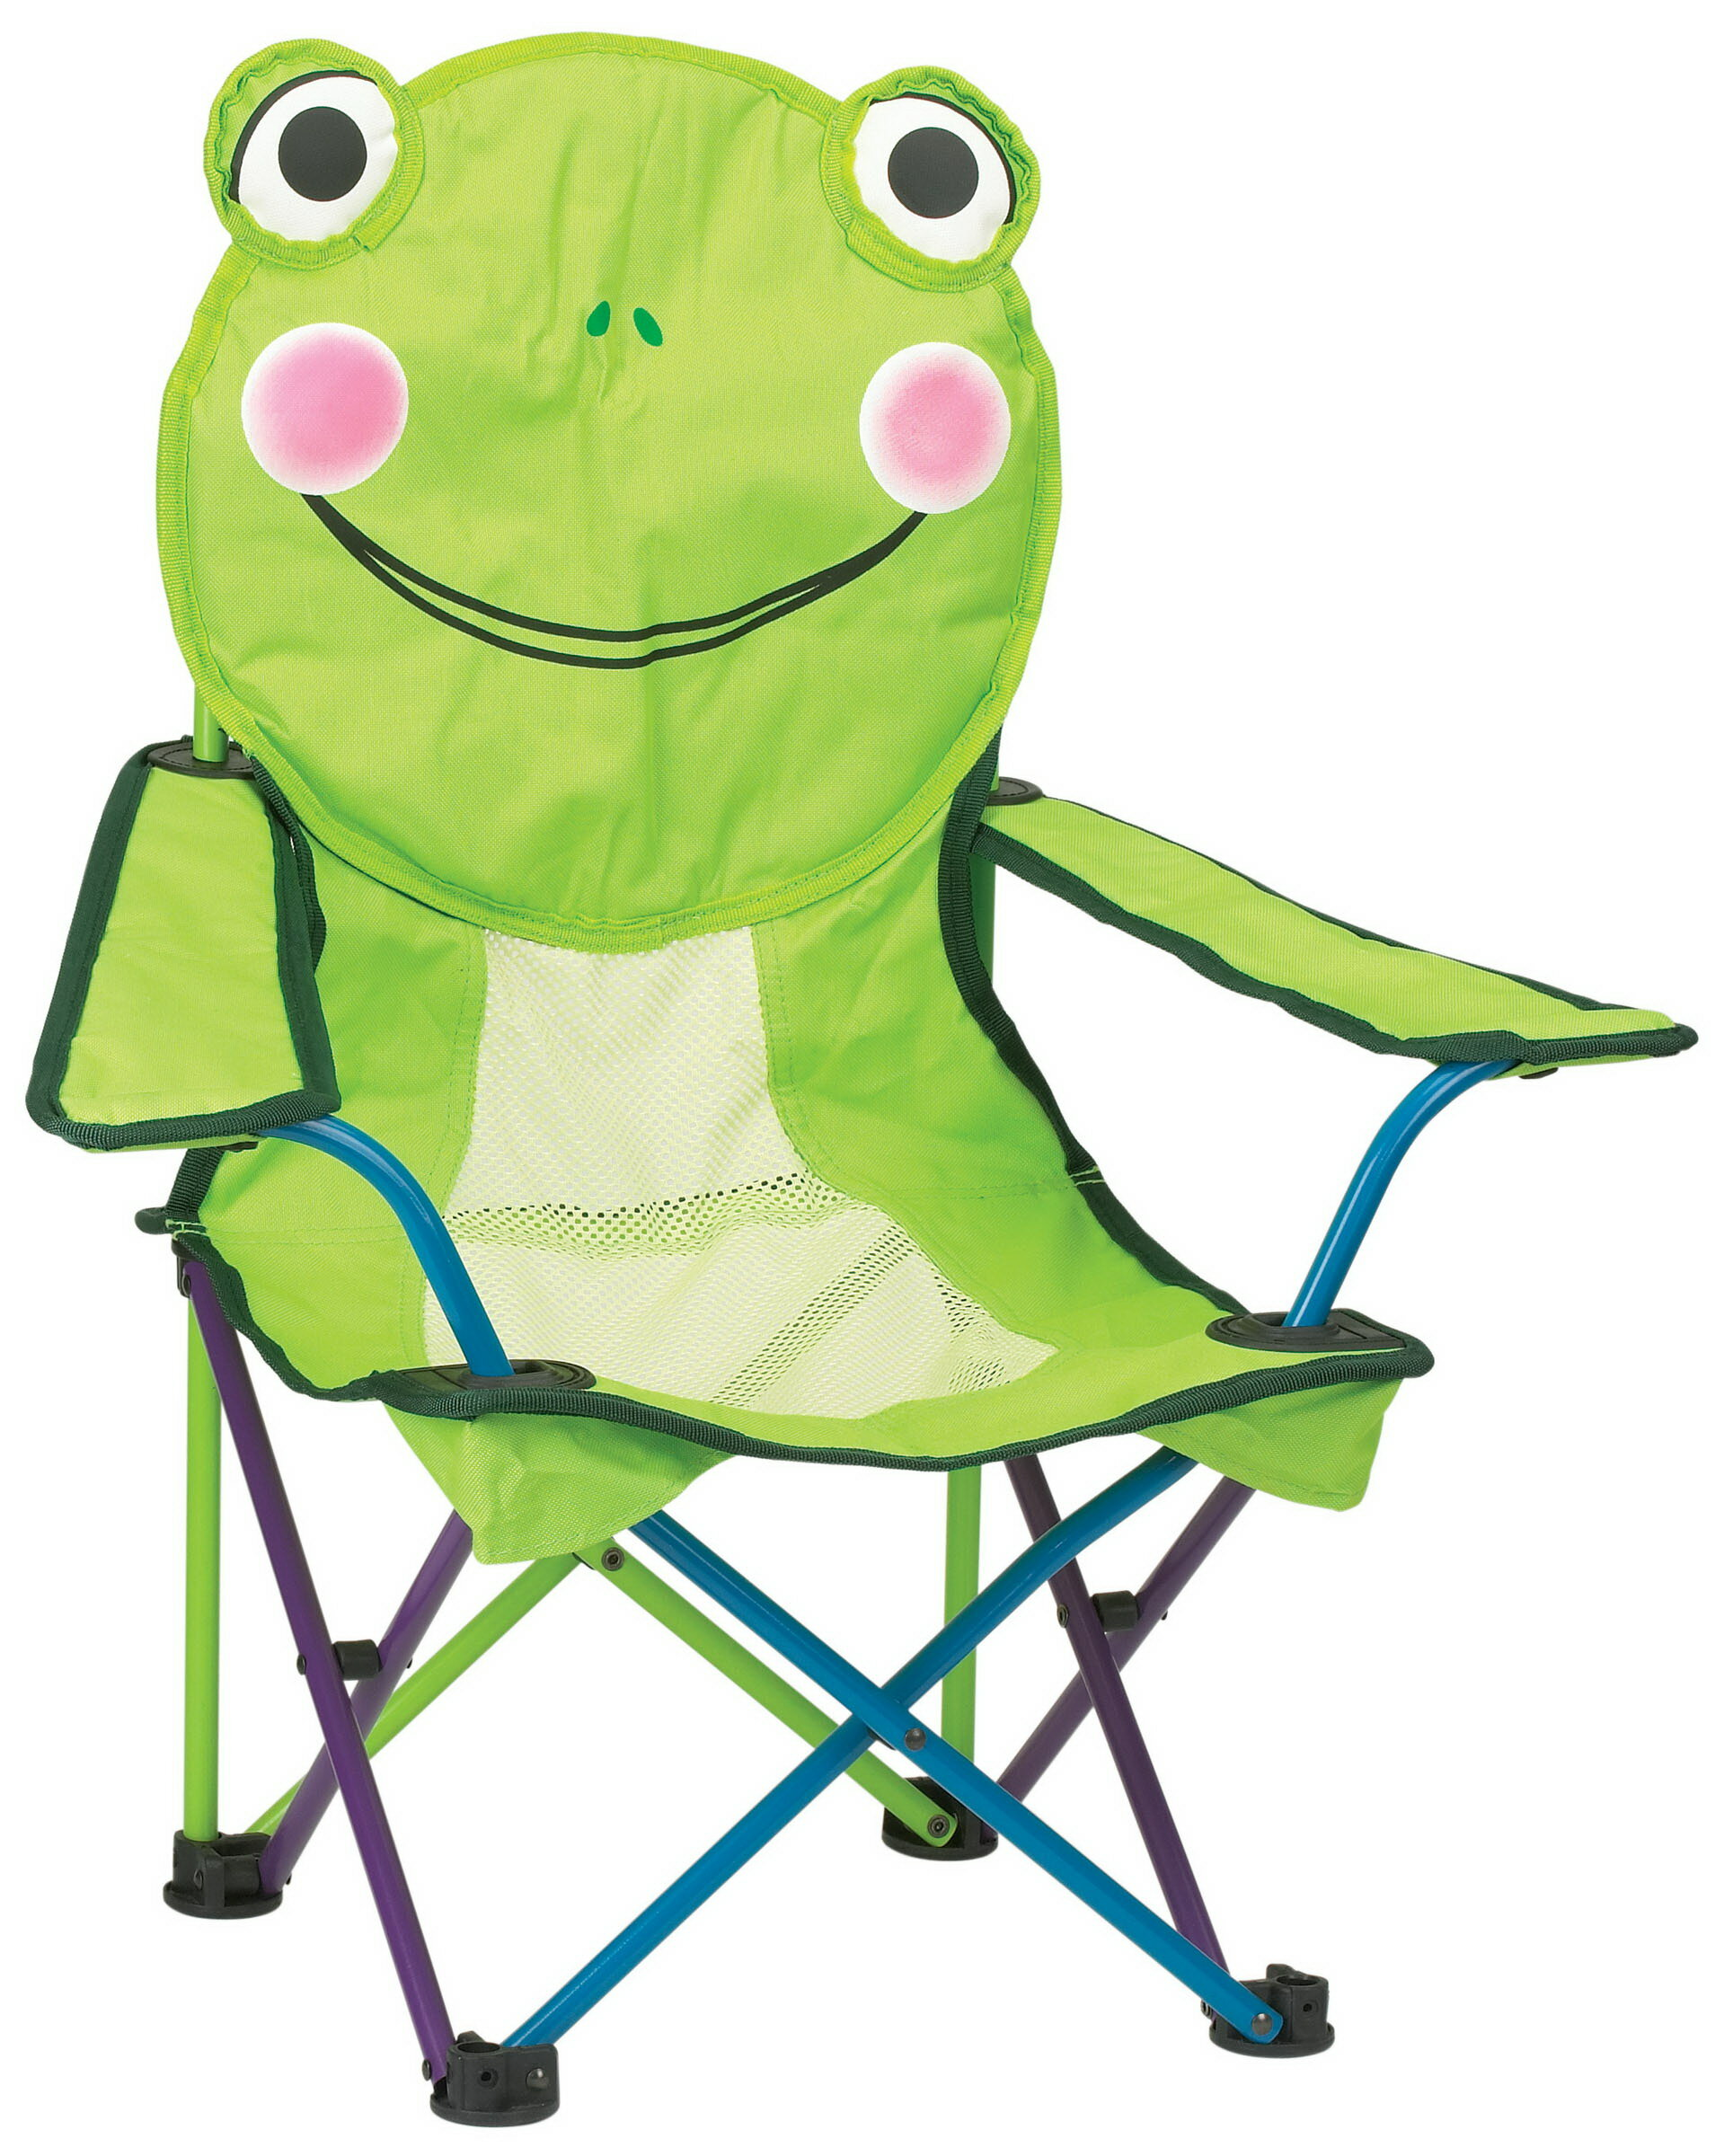 Pacific Play Tents Freddy The Frog Kids Beach Chair | Wayfair